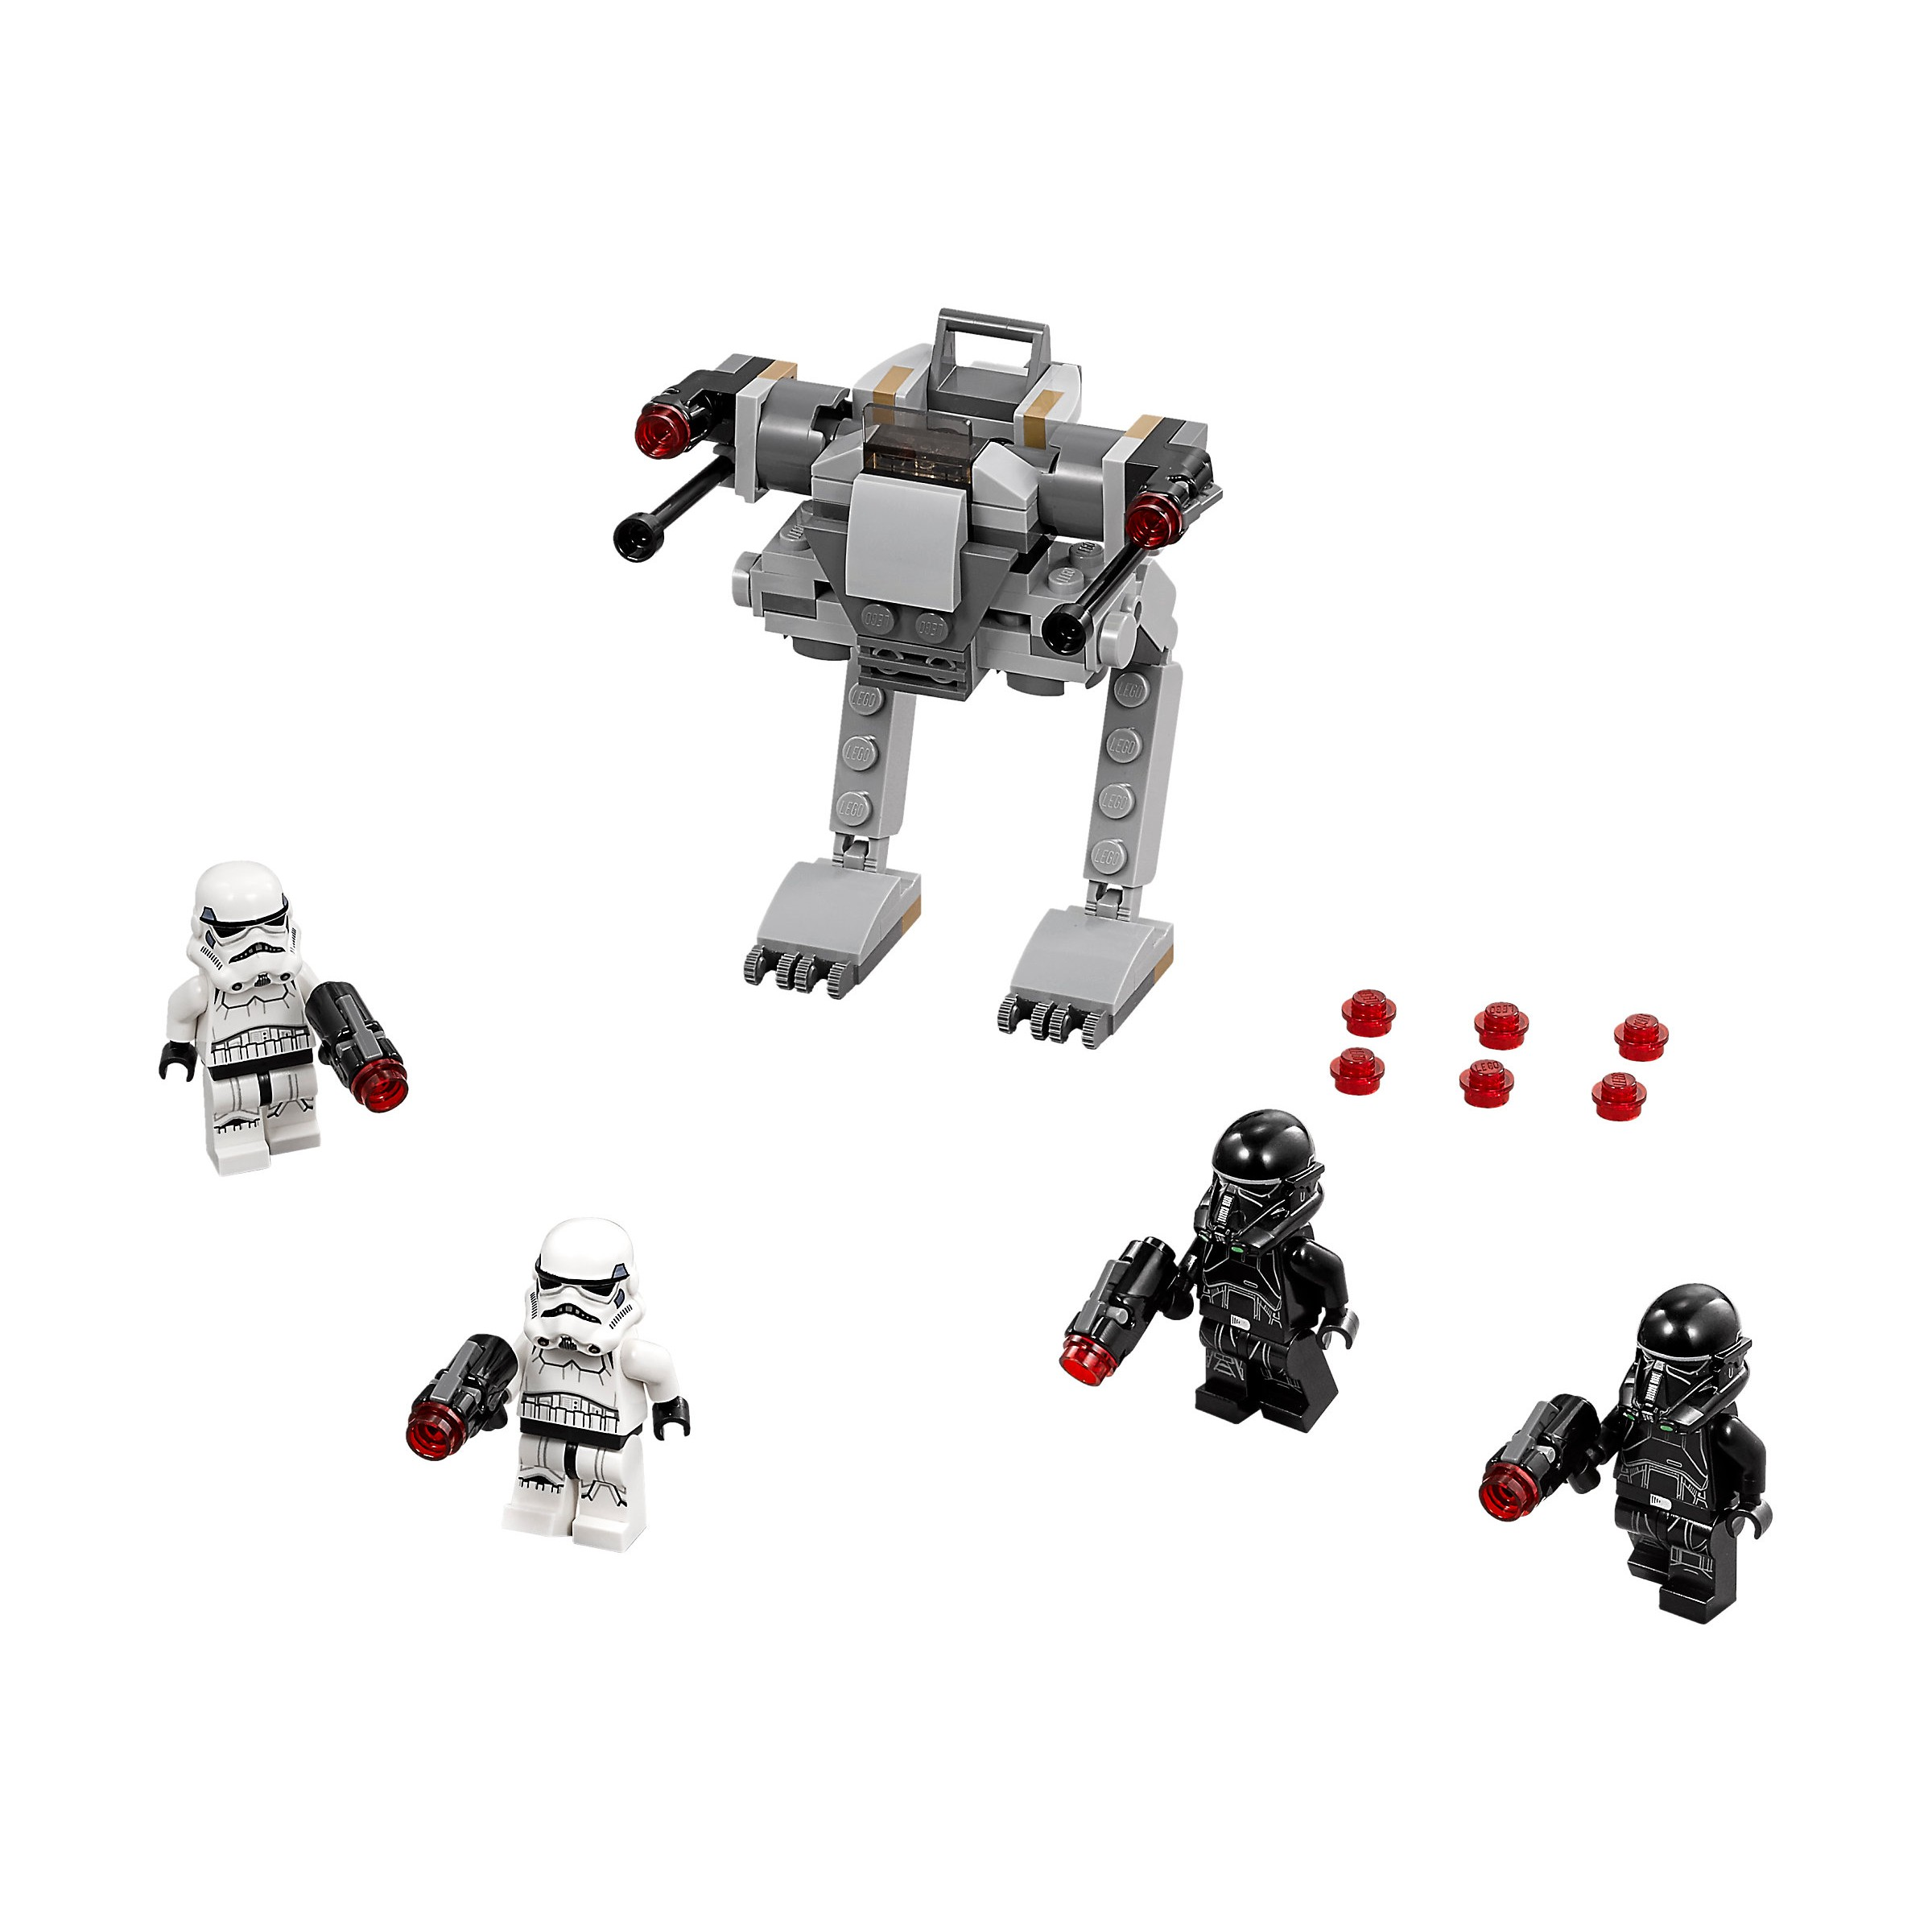 Lego Star Wars Imperial Trooper Battle Pack At Hobby